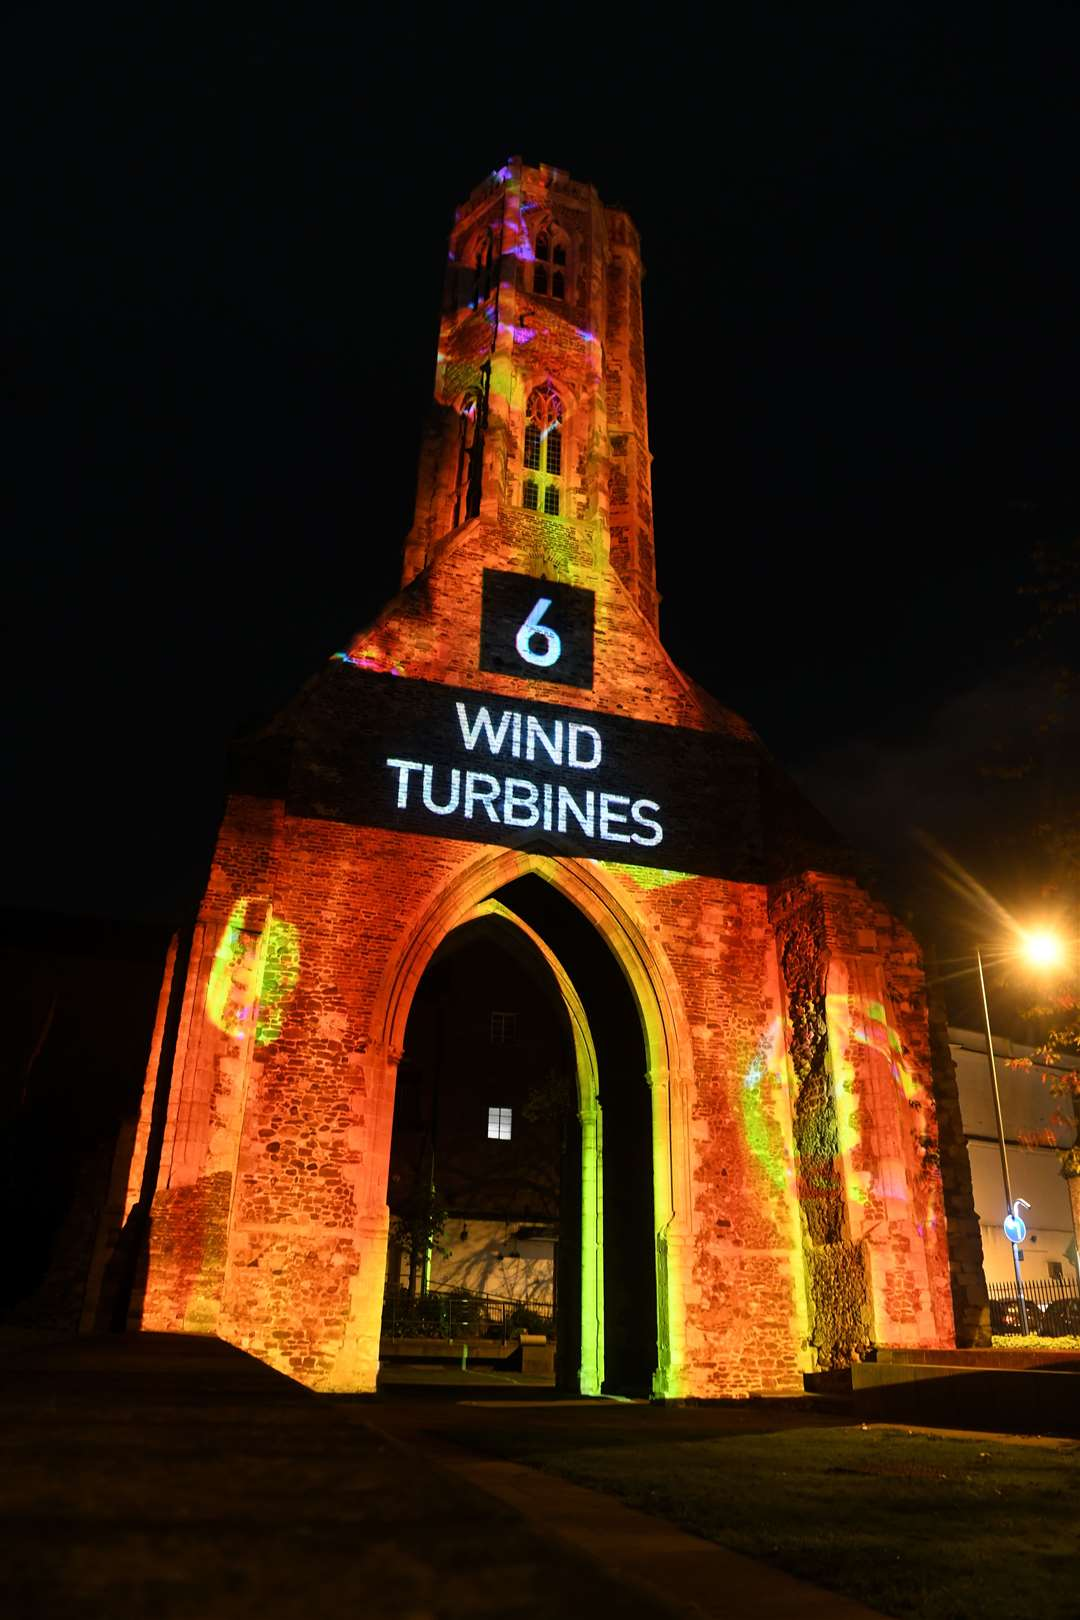 Greyfriars Tower on Sunday, October 25, 2020